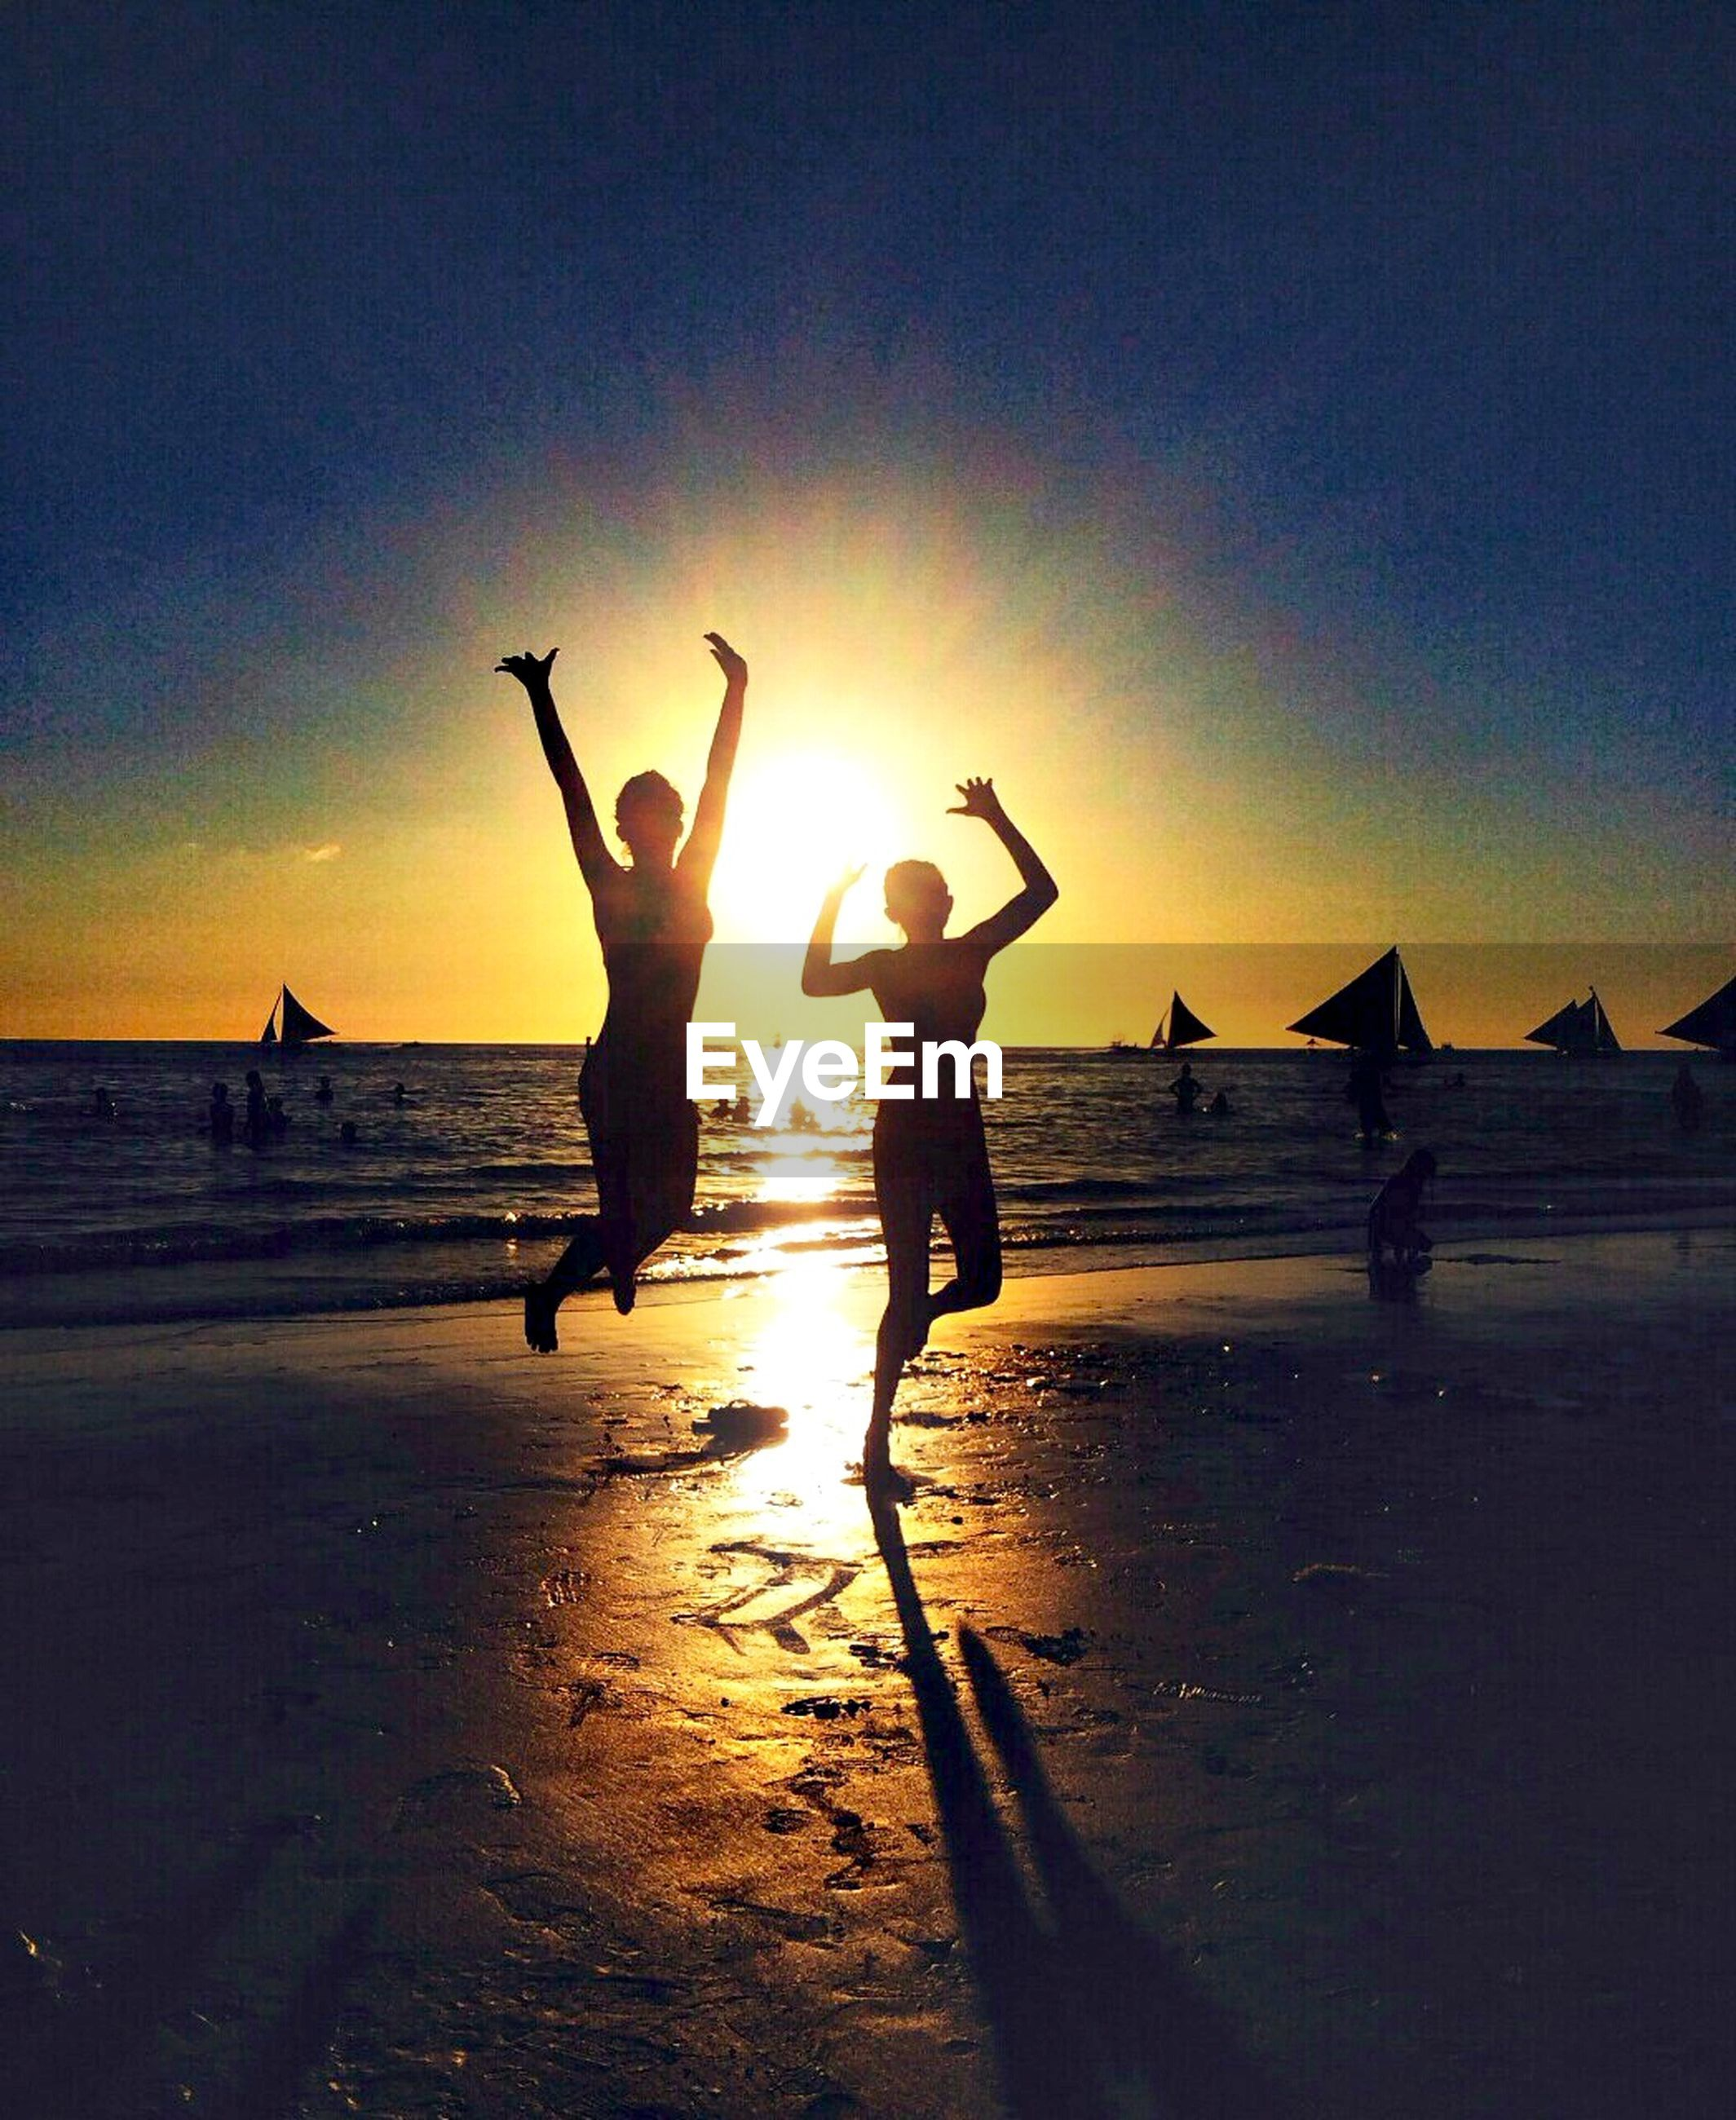 lifestyles, water, leisure activity, silhouette, sunset, beach, sea, reflection, enjoyment, vacations, sun, sky, togetherness, fun, scenics, nature, beauty in nature, flying, tranquility, weekend activities, tourism